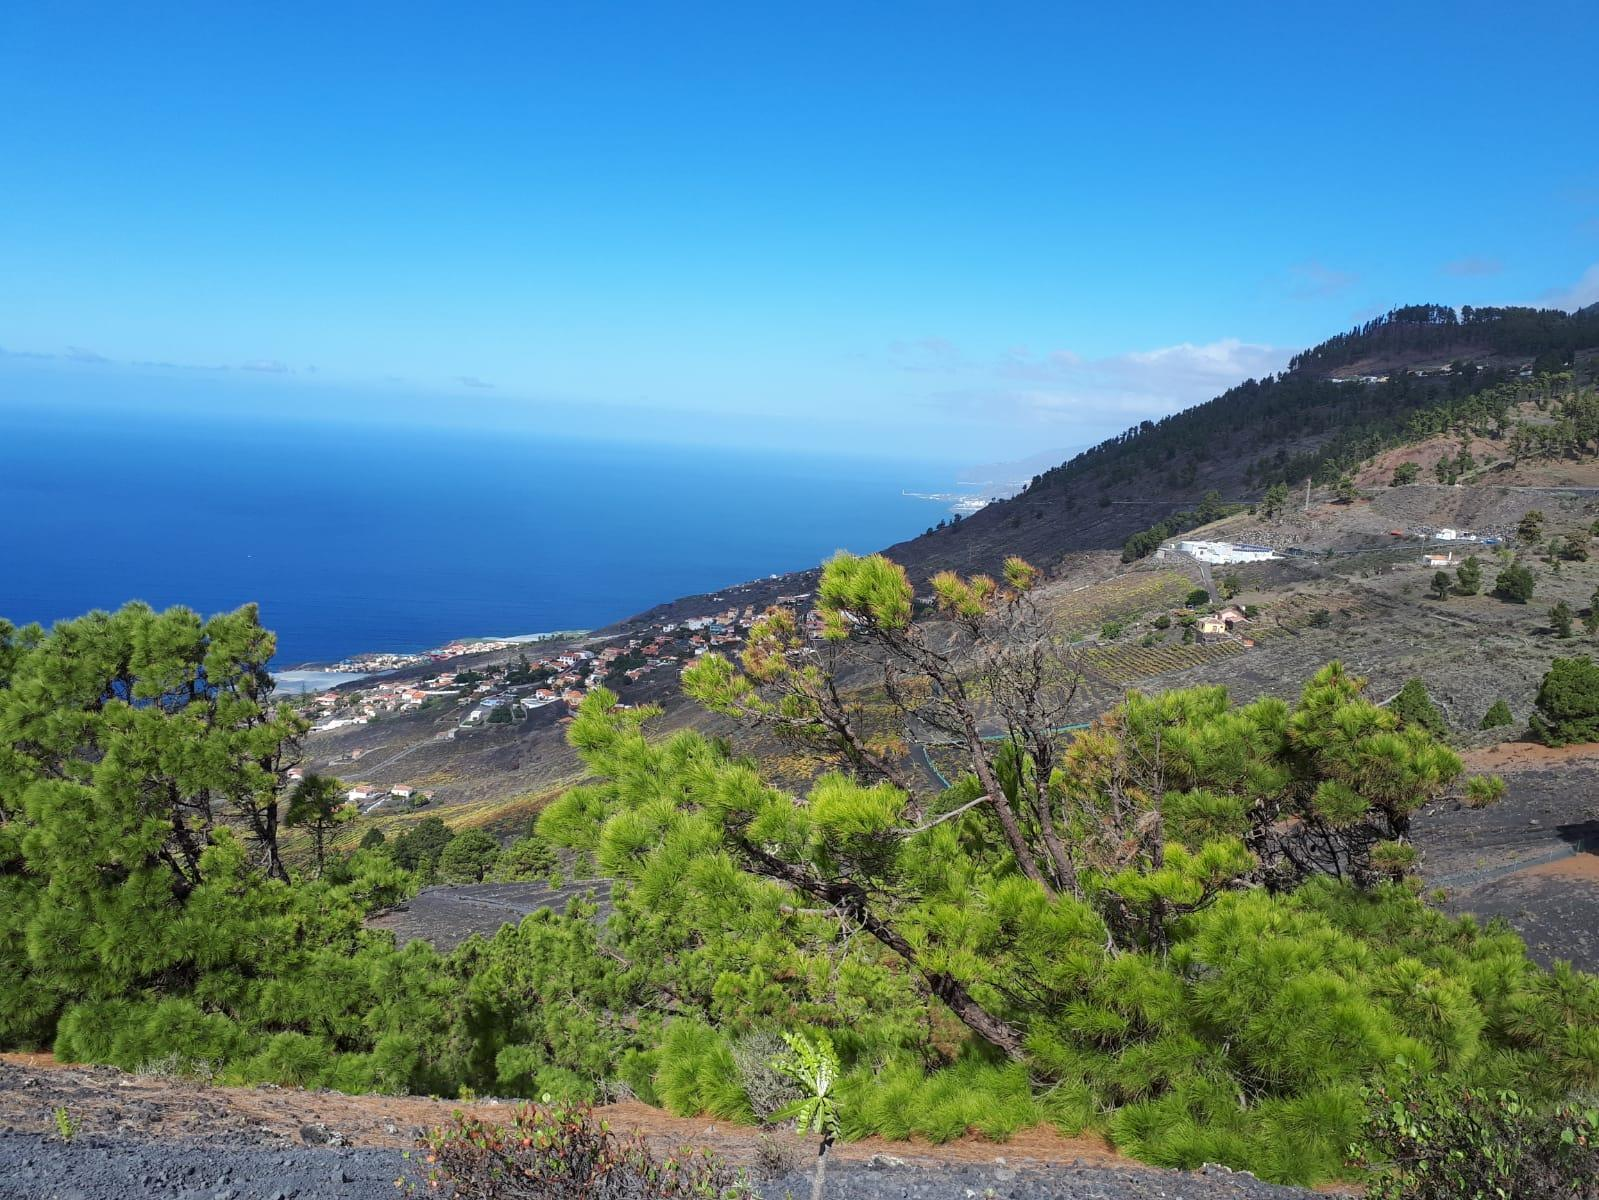 Hiking On Volcanos And Swimming In The Ocean